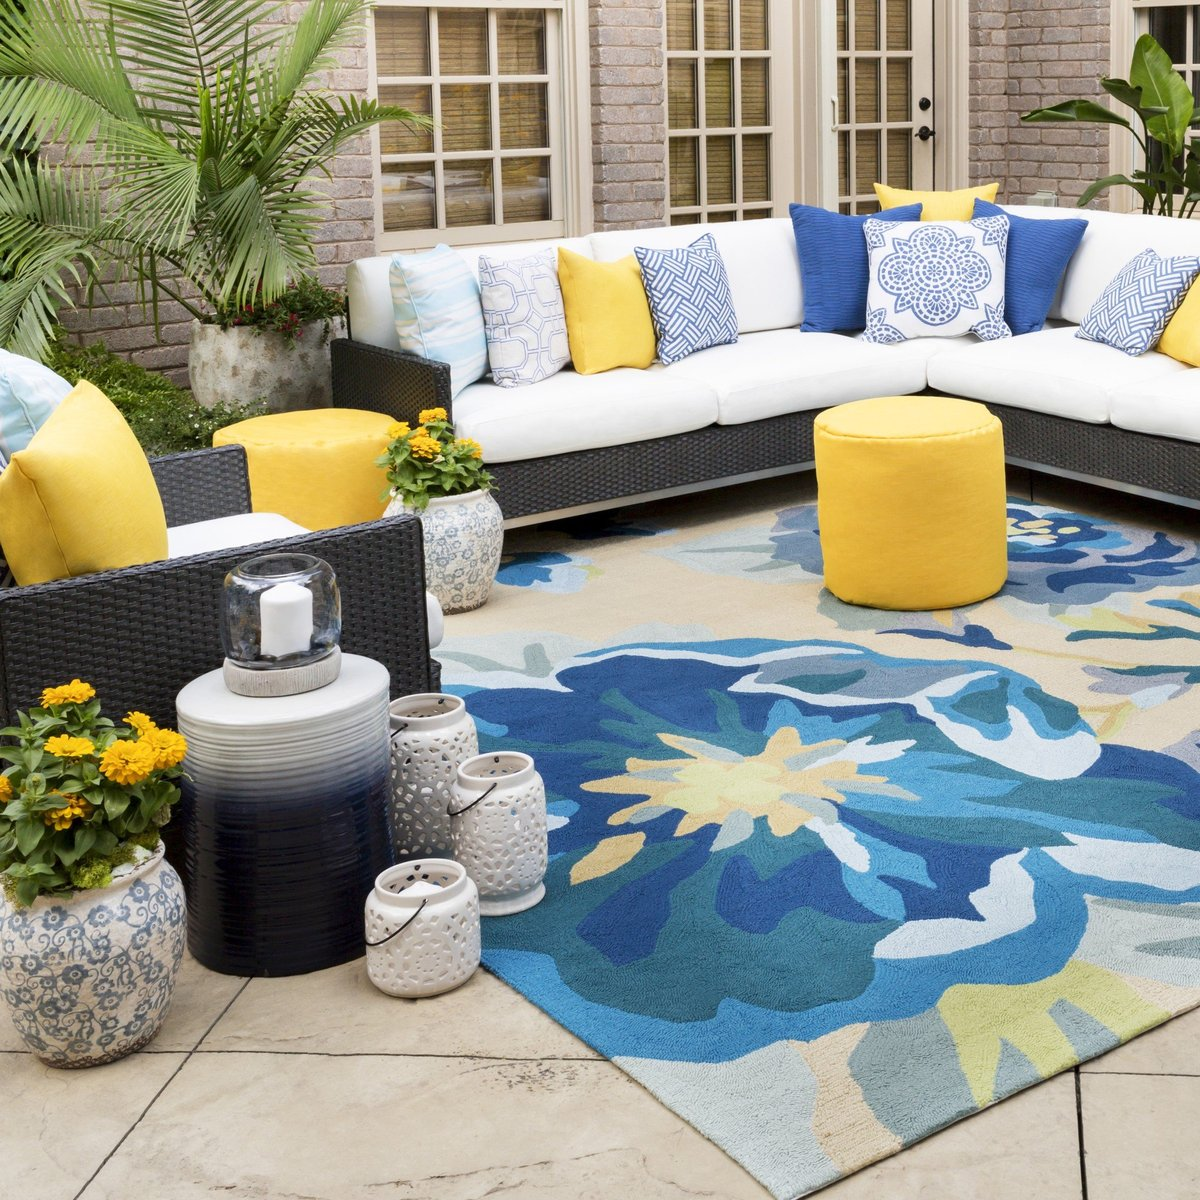 Bright and Cheerful Outdoor Decor ideas